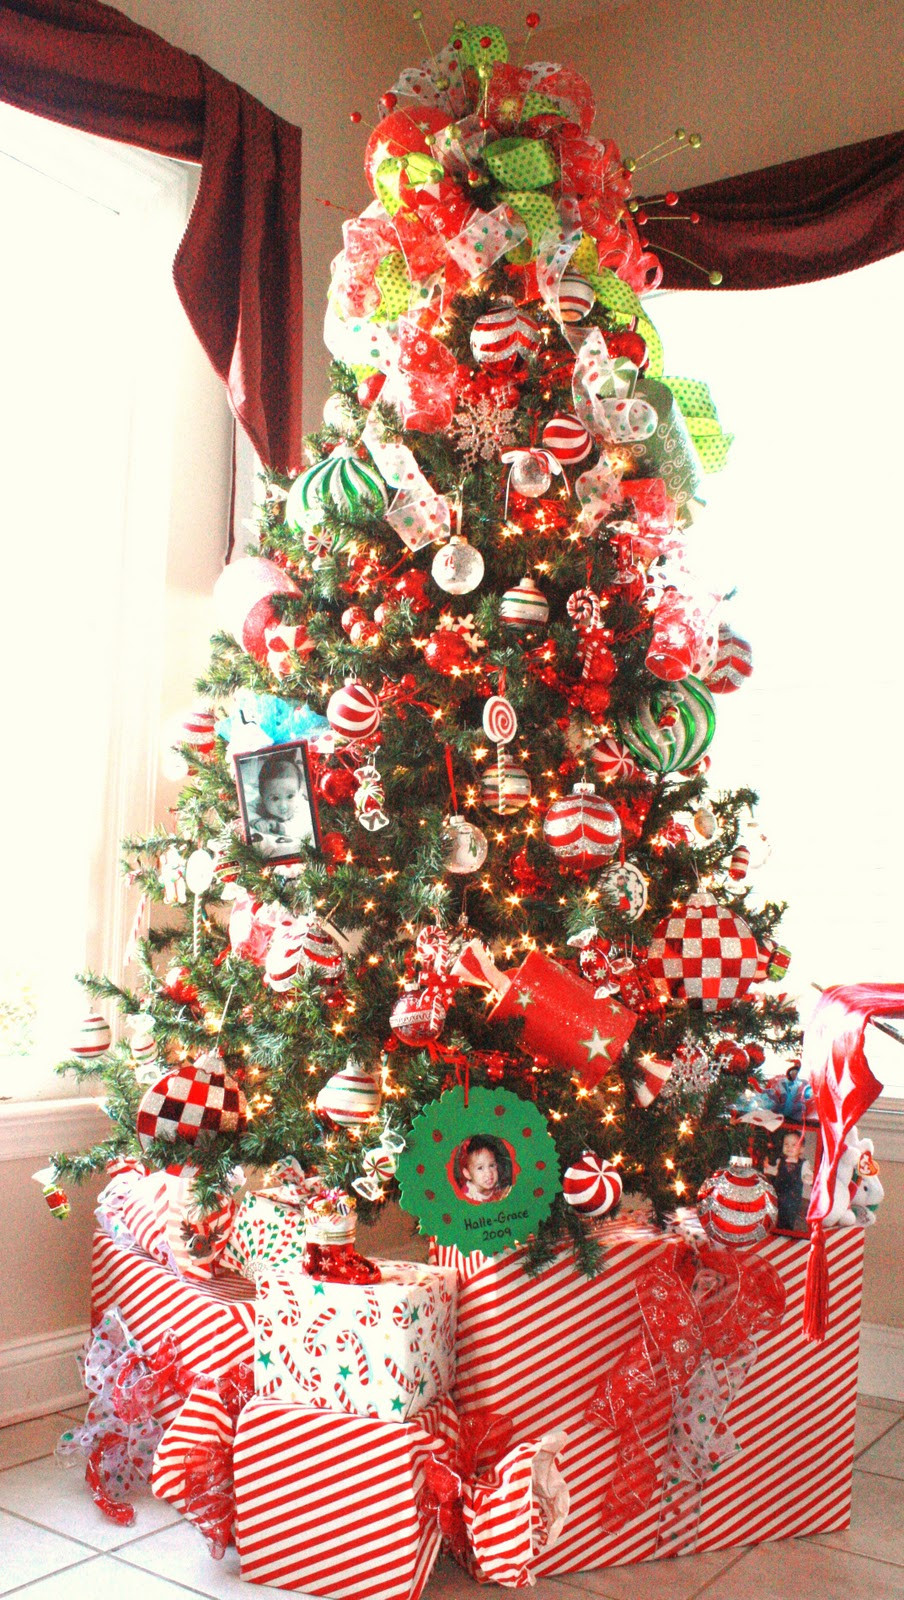 Candy Christmas Tree Decorations  46 Famous Candy Christmas Tree Decorations Ideas